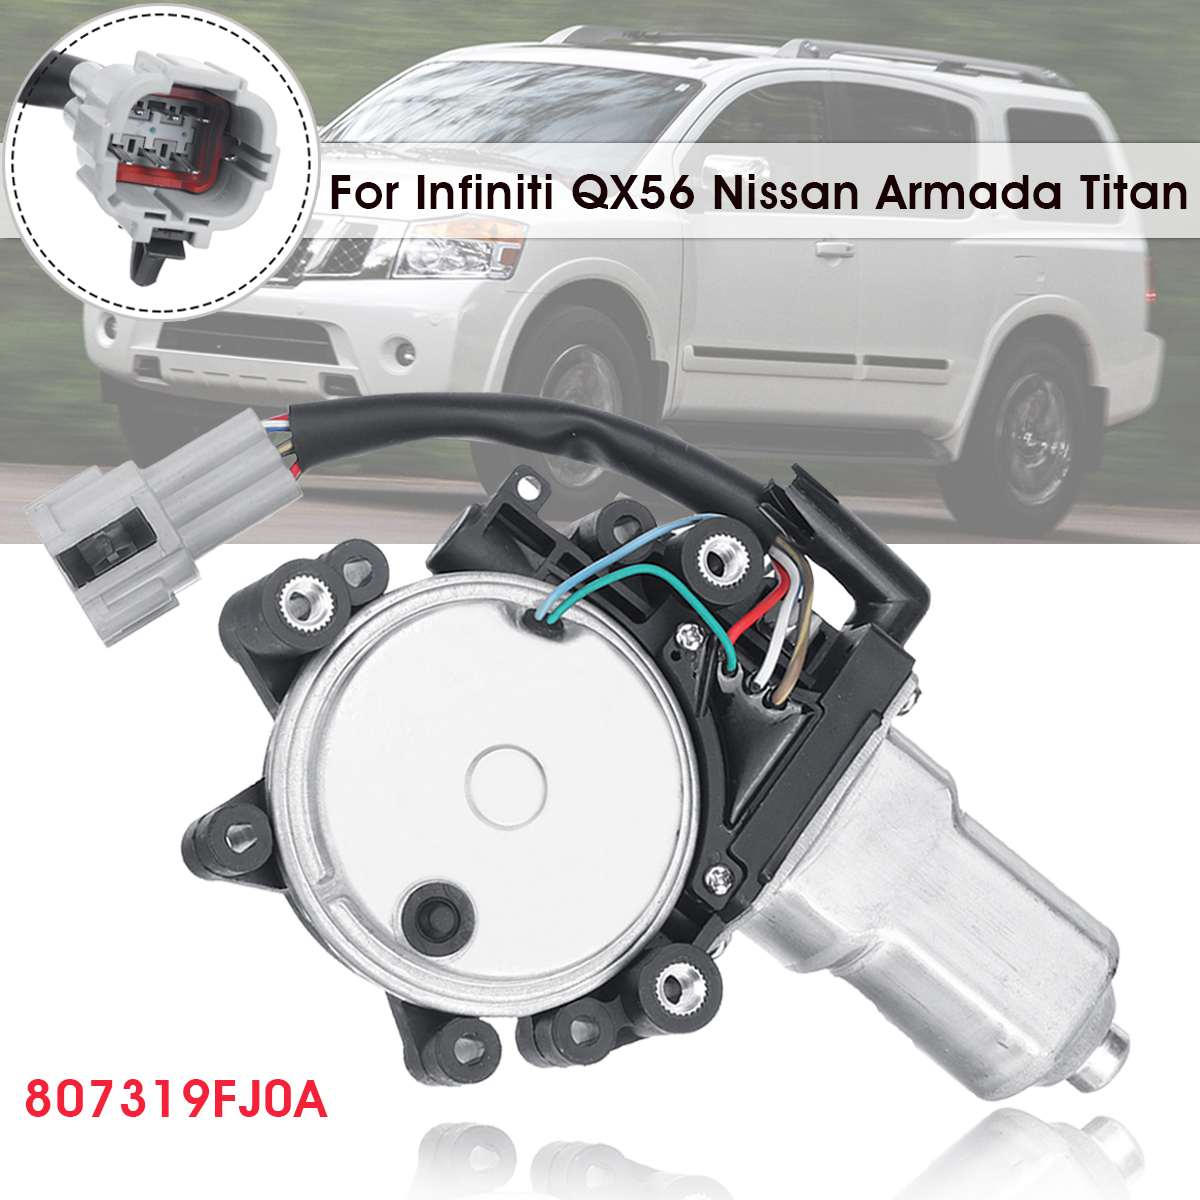 807319FJ0A Front Left Driver Side Window Motor For Infiniti QX56 for Nissan 2004 2014 Armada Titan